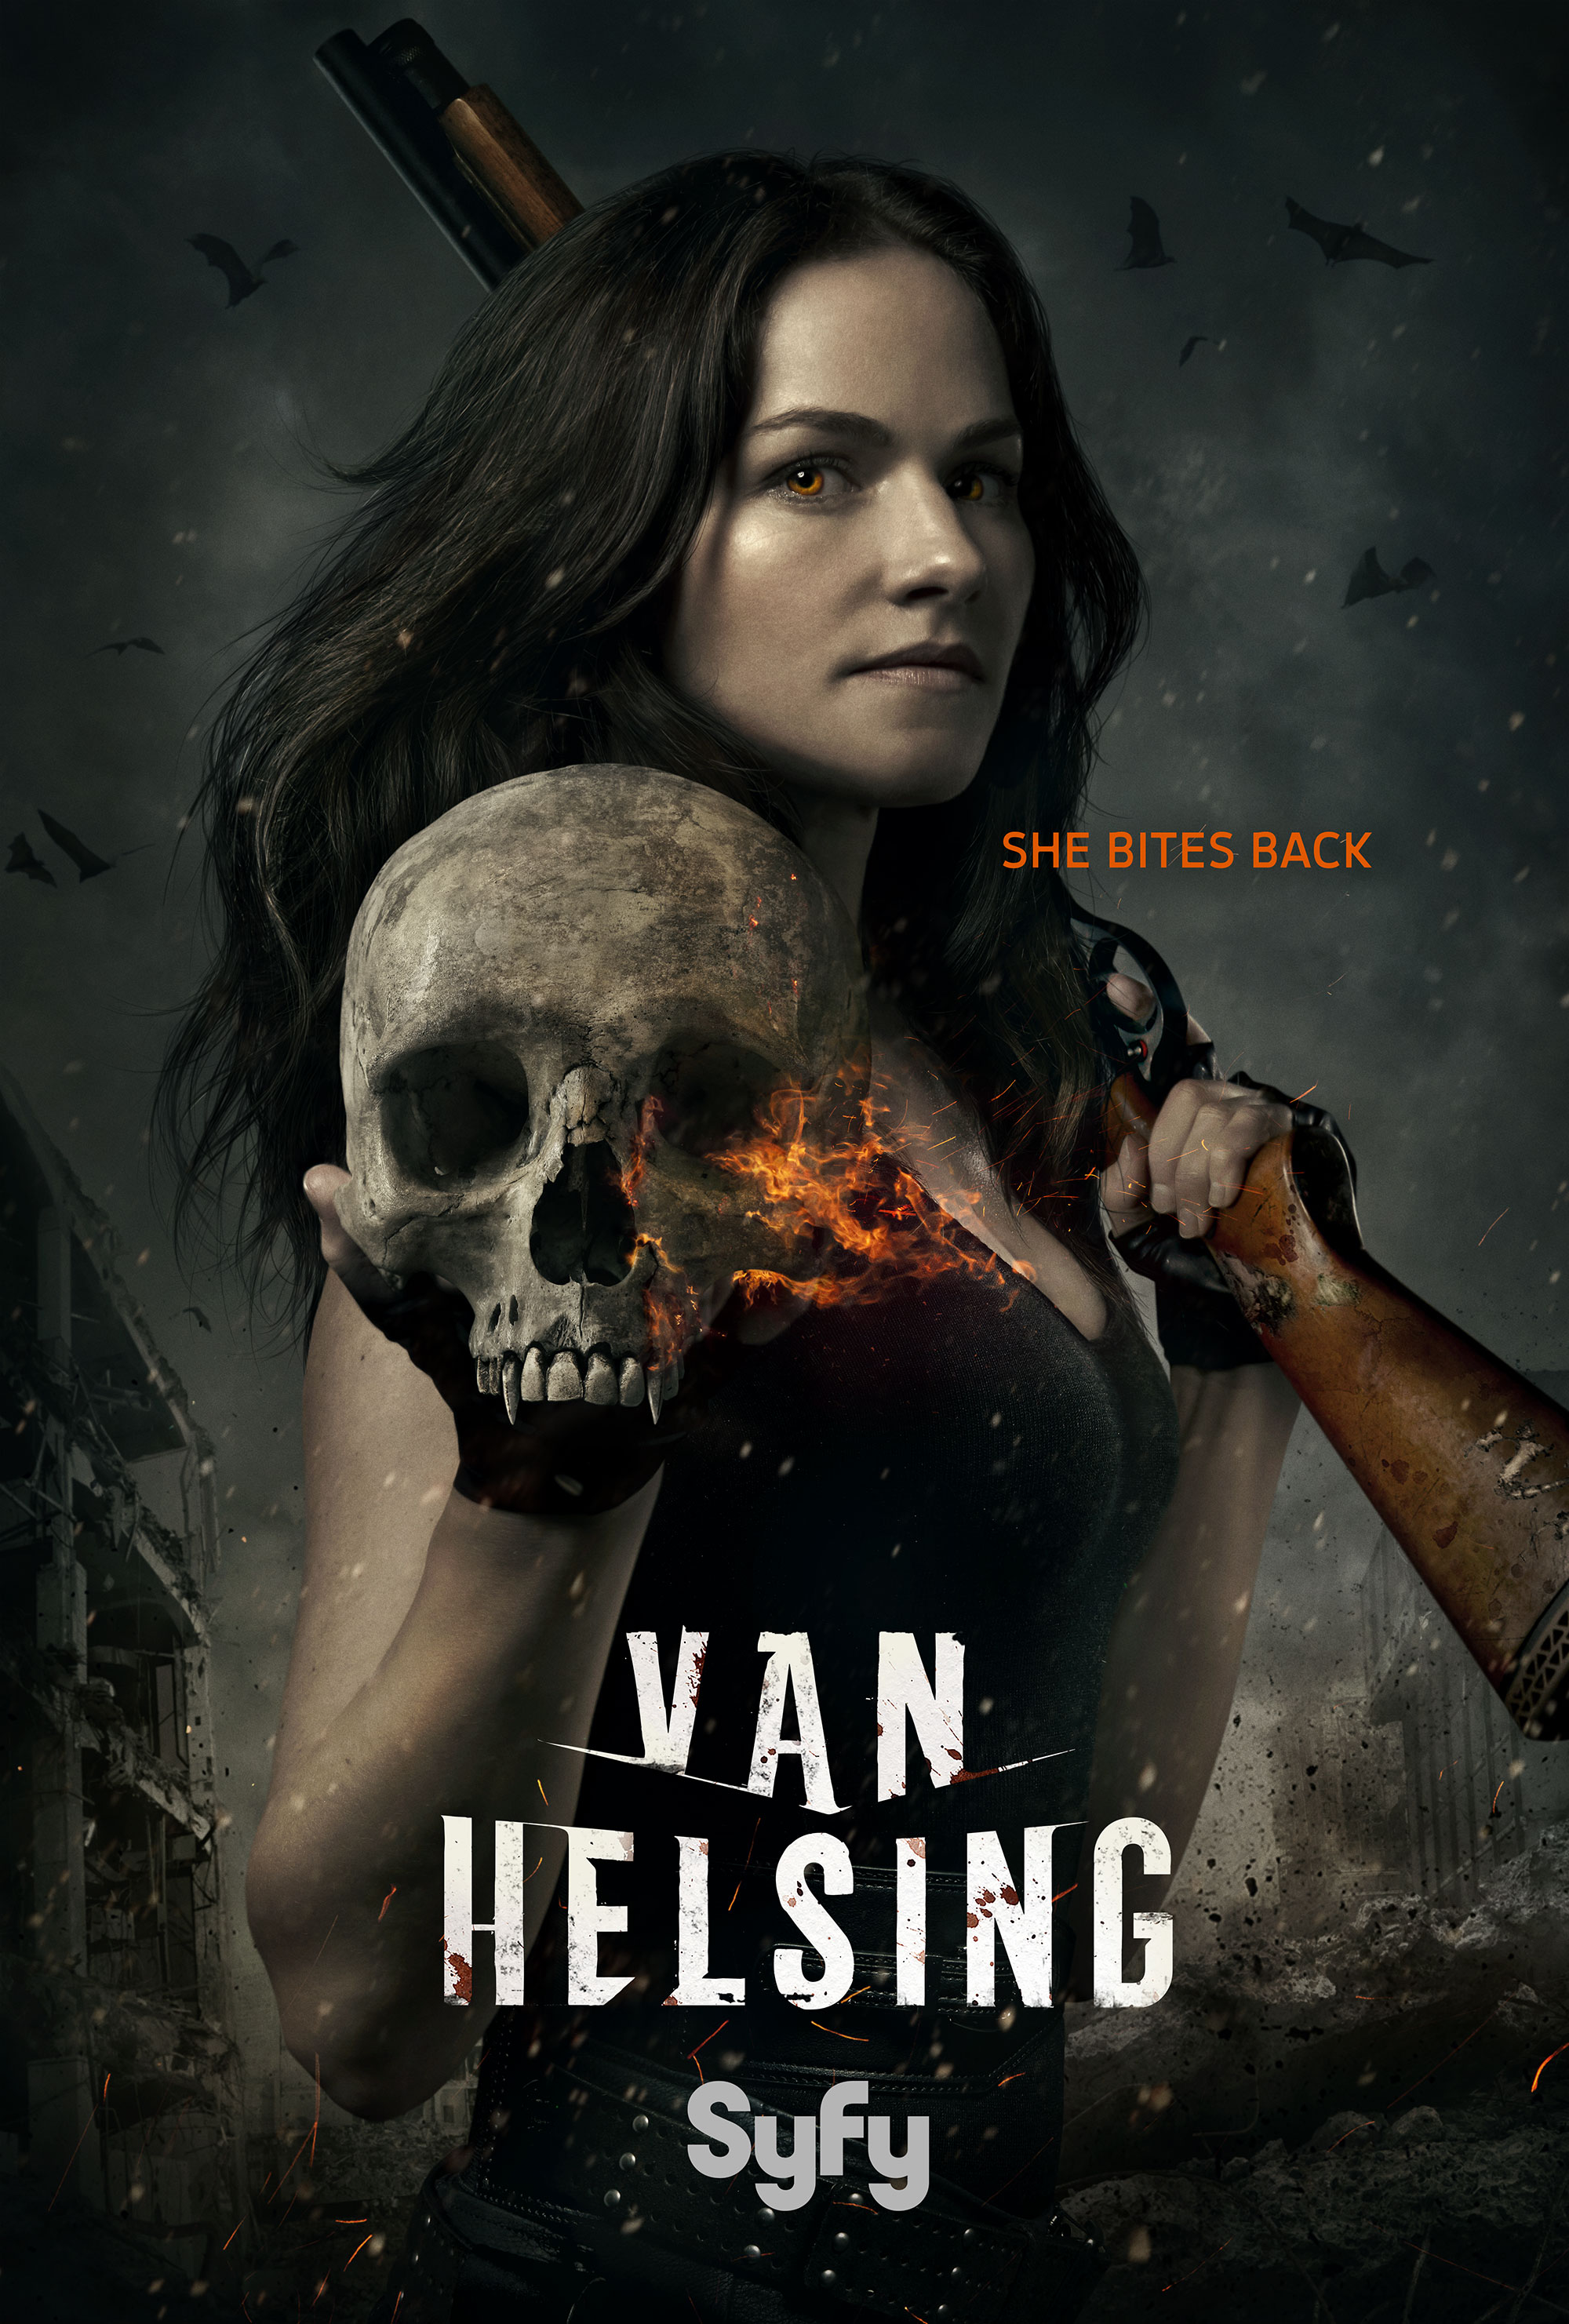 http://dl5.downloadha.com/hosein/Movie/Series/Van%20Helsing/Van-Helsing-2016-Syfy-TV-Series-cover-large.jpg?refresh=1